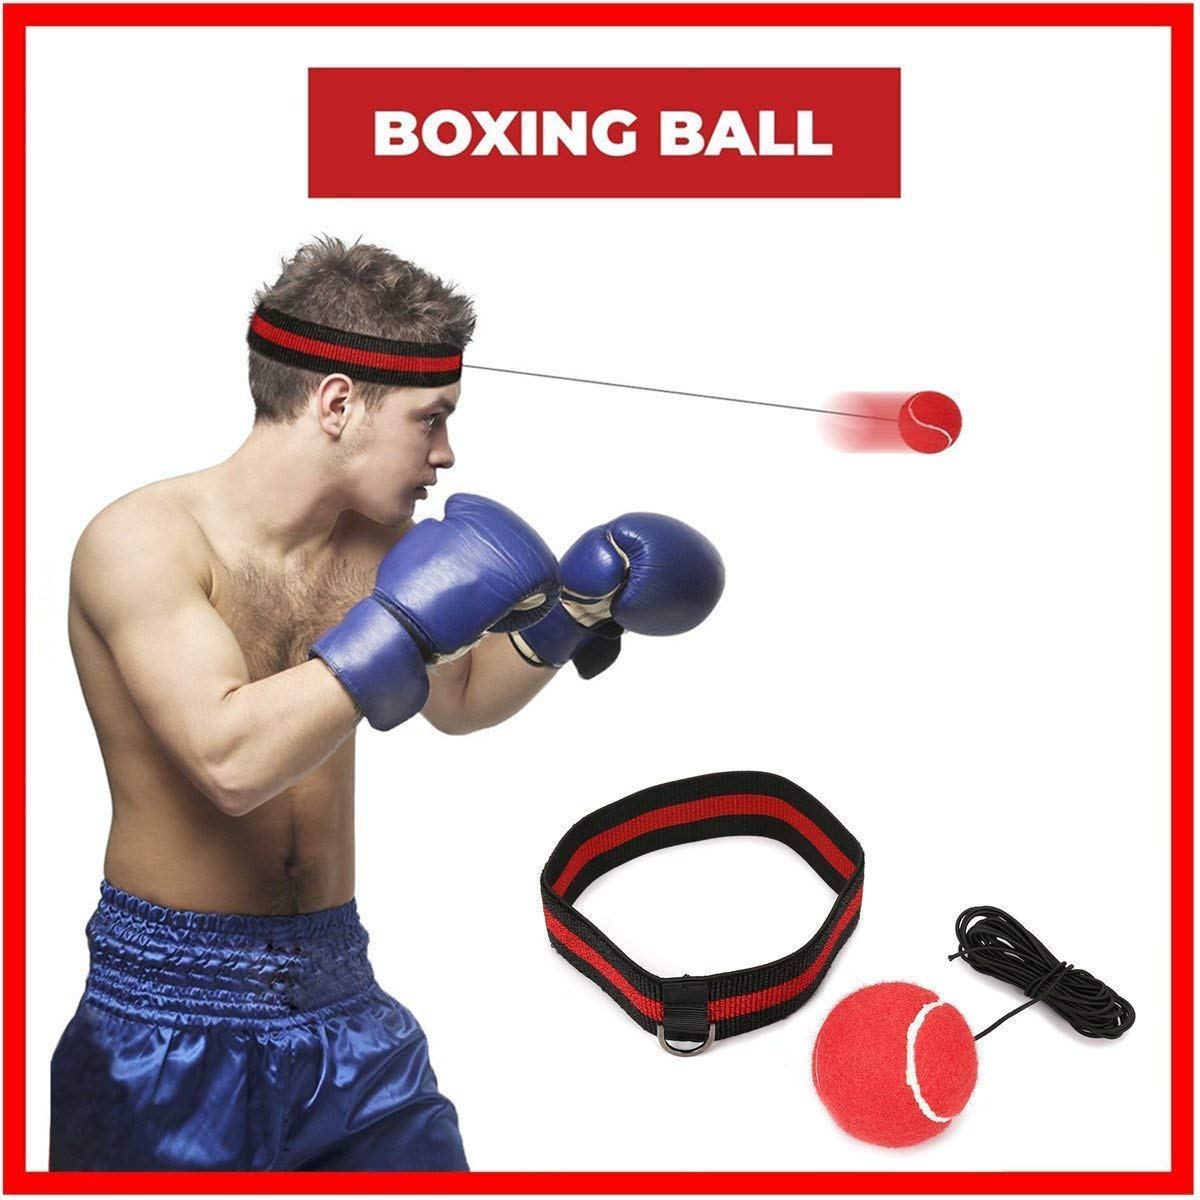 SGODDE Reflex Boxing Ball, Fight Ball Reflex on String with Headband